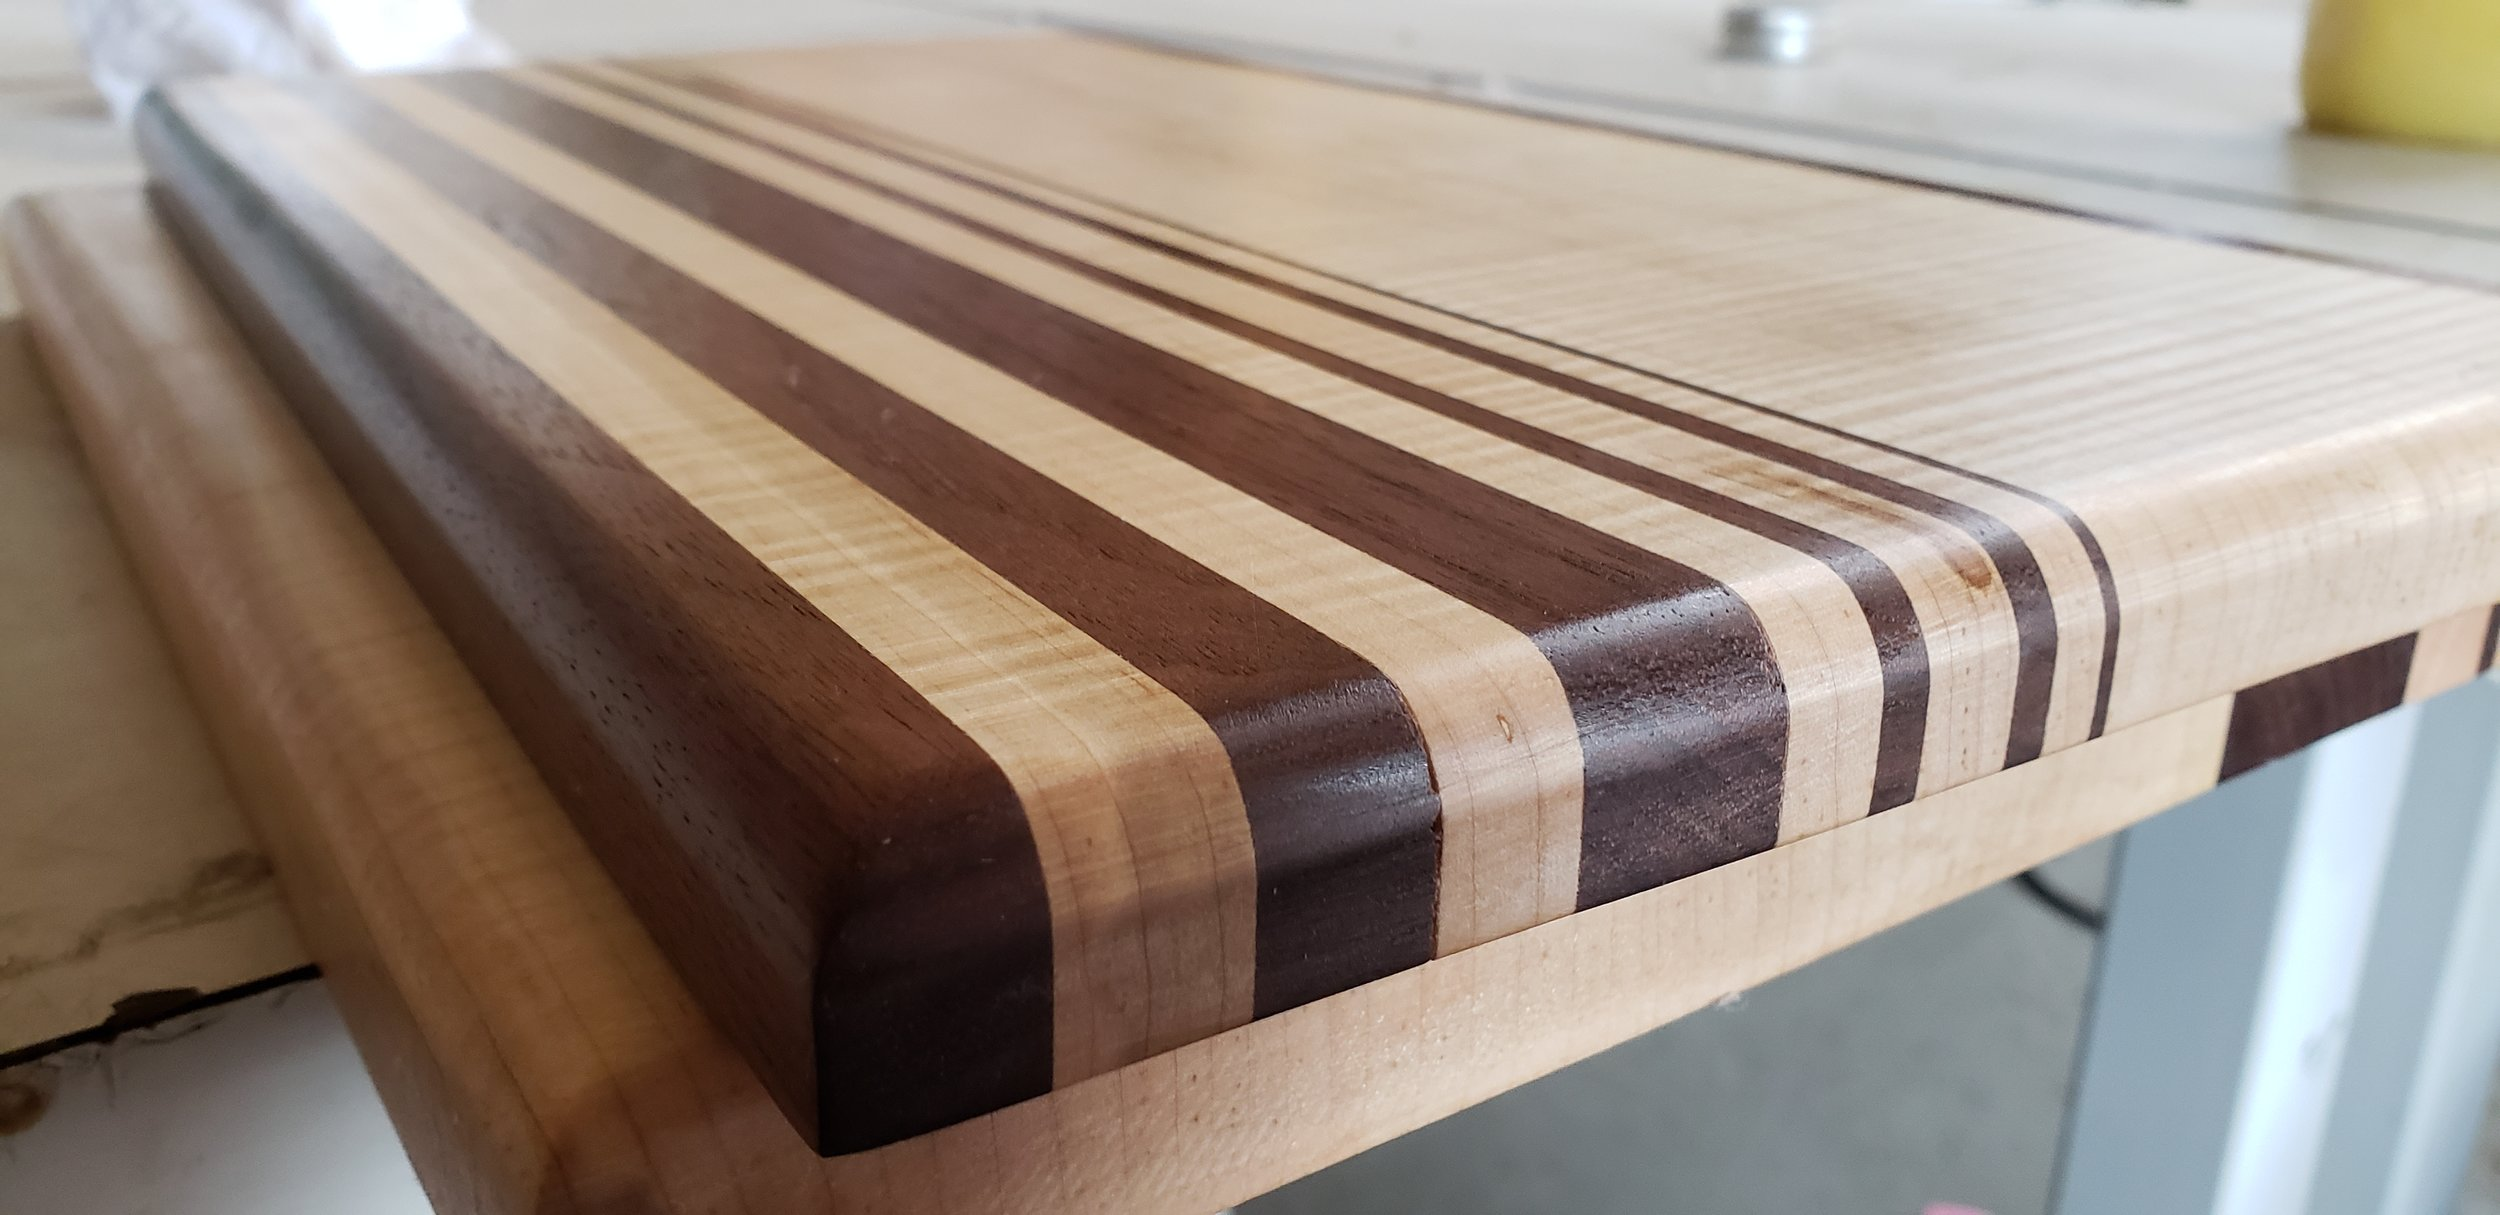 Cutting Board Classes - Woodworking Classes